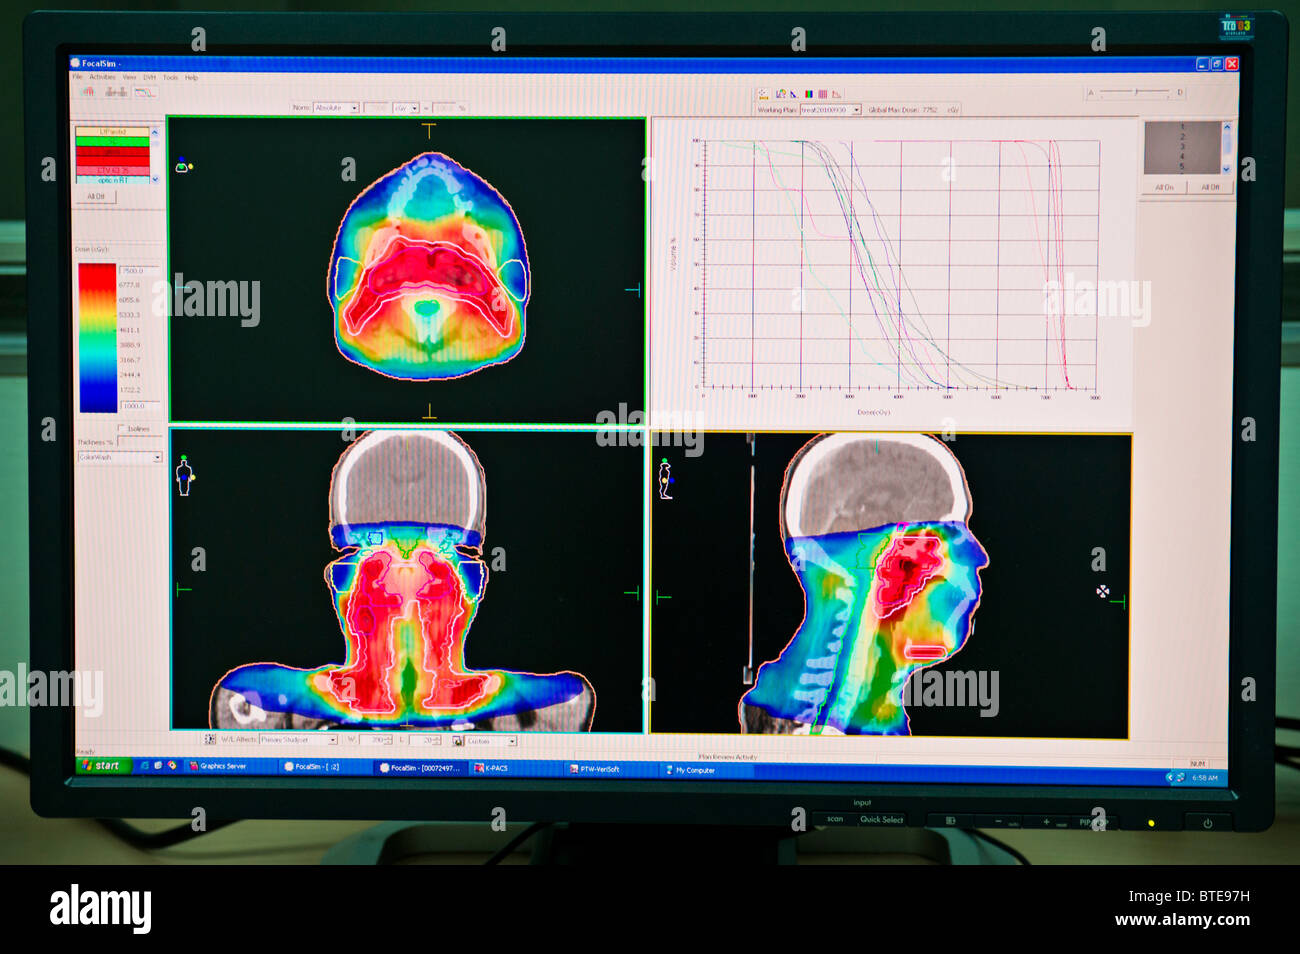 Computer monitor in hospital oncology department showing CT images - Stock Image